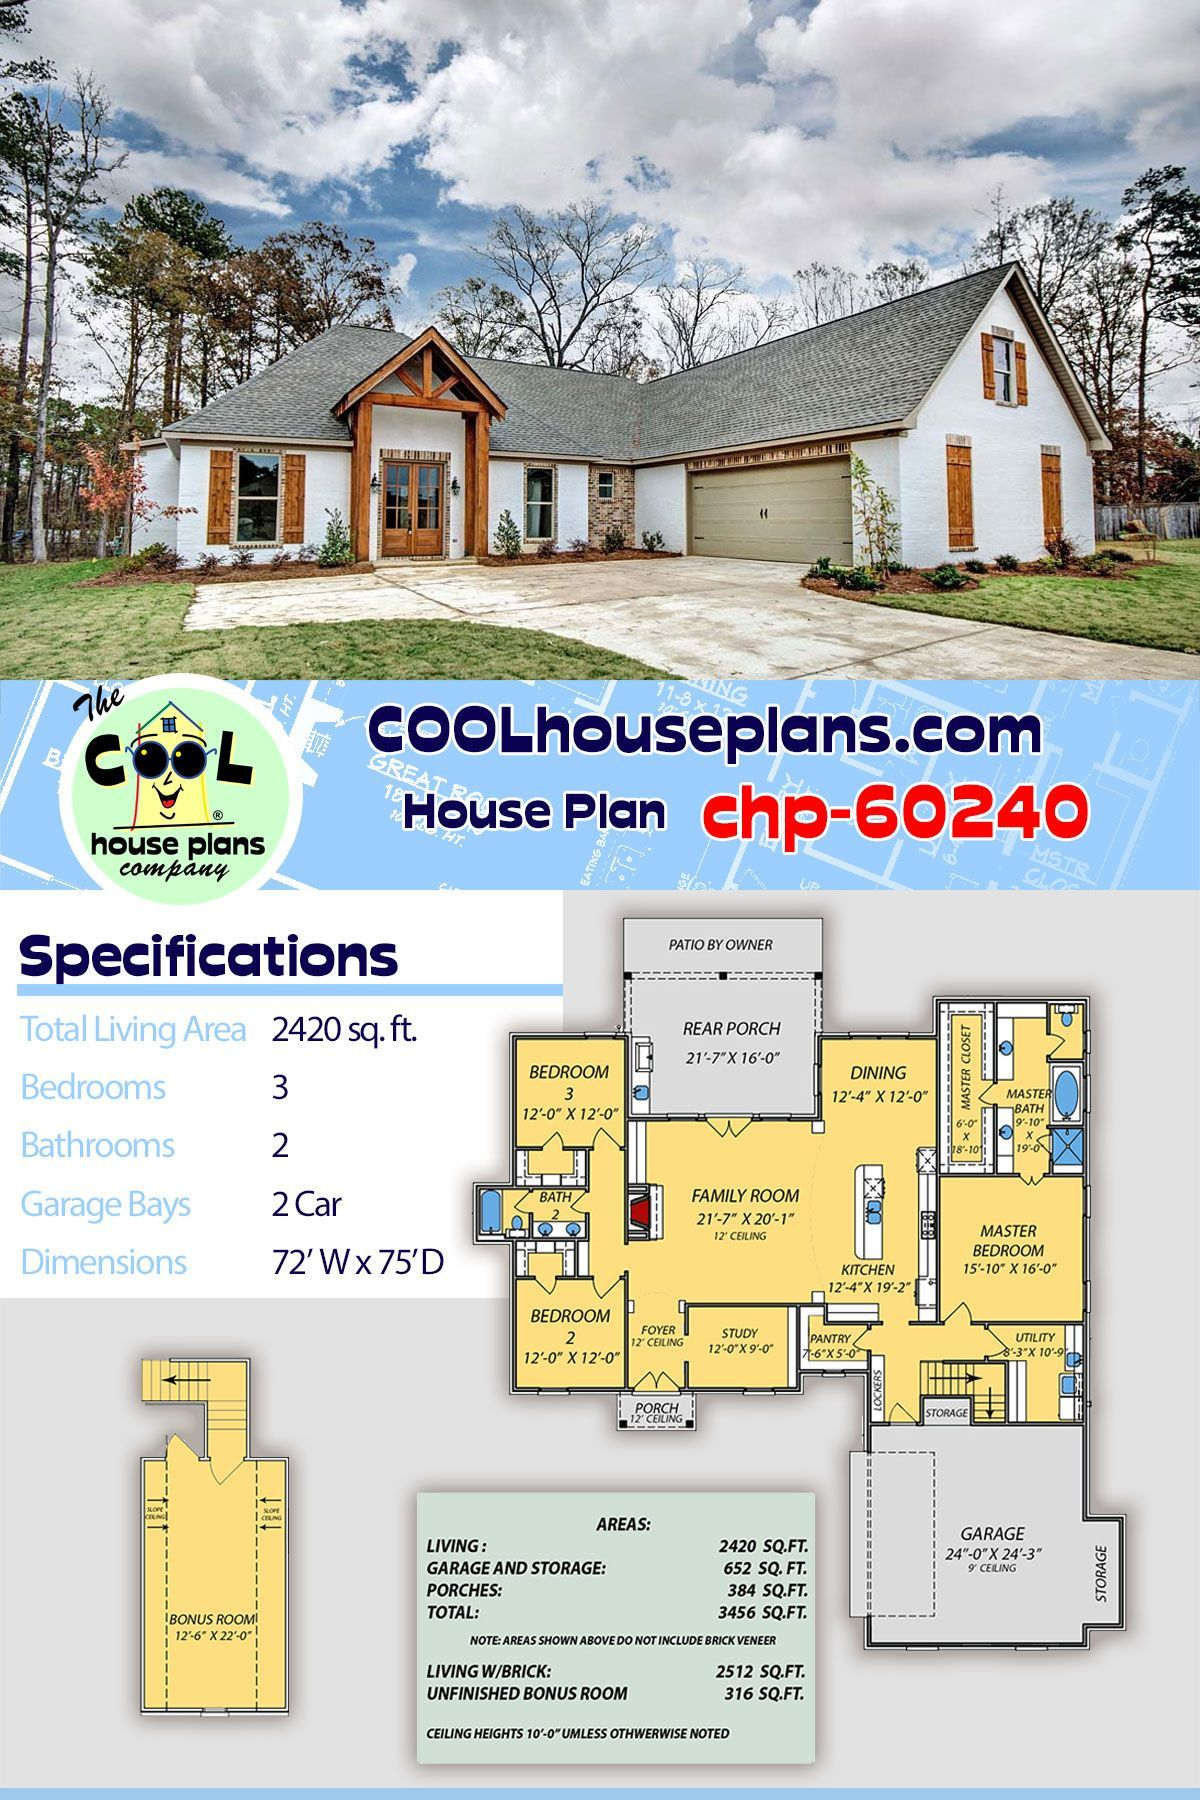 Three Bedroom Two Bathroom Country House Plan Chp 60240 New House Floor Plan With Bonus Room House Plans Country House Plan Floor Plans